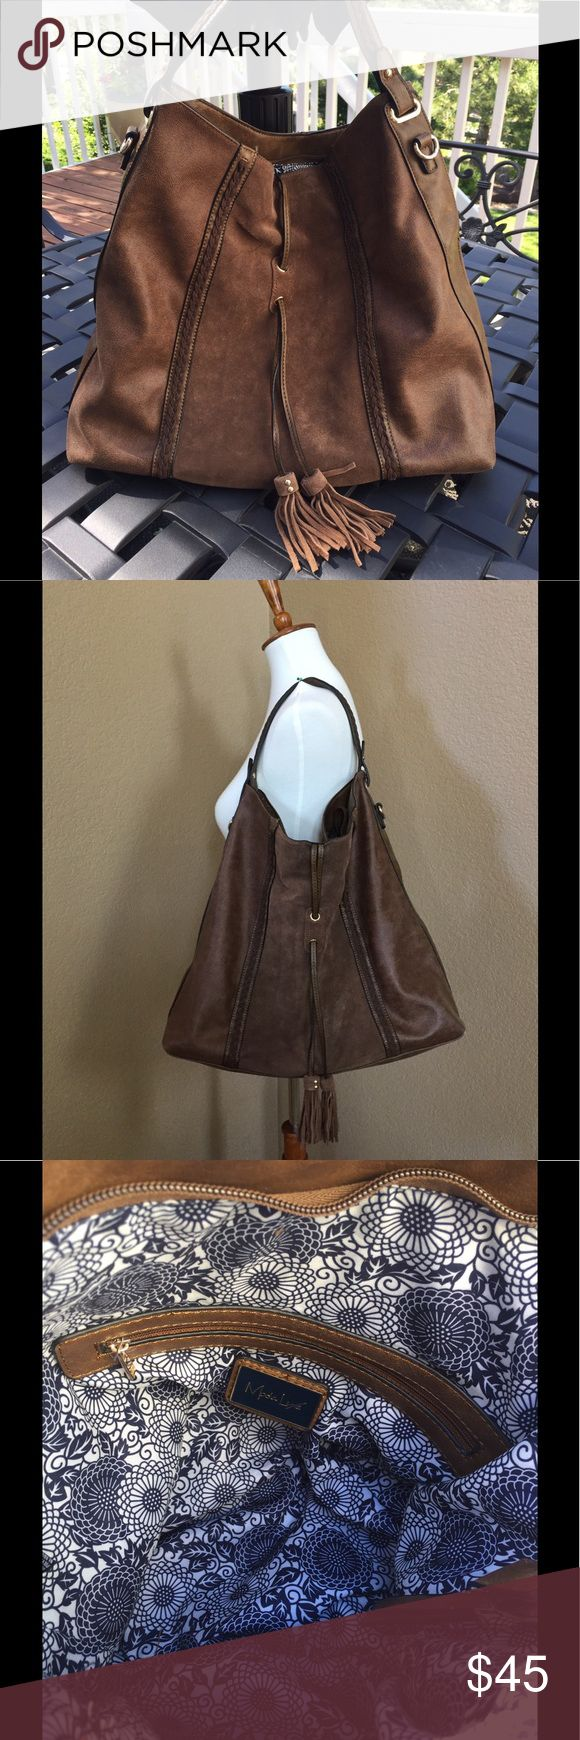 """Moda Luxe 'Hope' Hobo Bag Moda Luxe 'Hope' Hobo Bag with a tiny scuff on the bottom (see photo #6) Faux Leather.  Top zipper closure. Handle with 11"""" drop. 22"""" detachable adjustable strap included.  Perfect for a college book bag 😊 Moda Luxe Bags Hobos"""